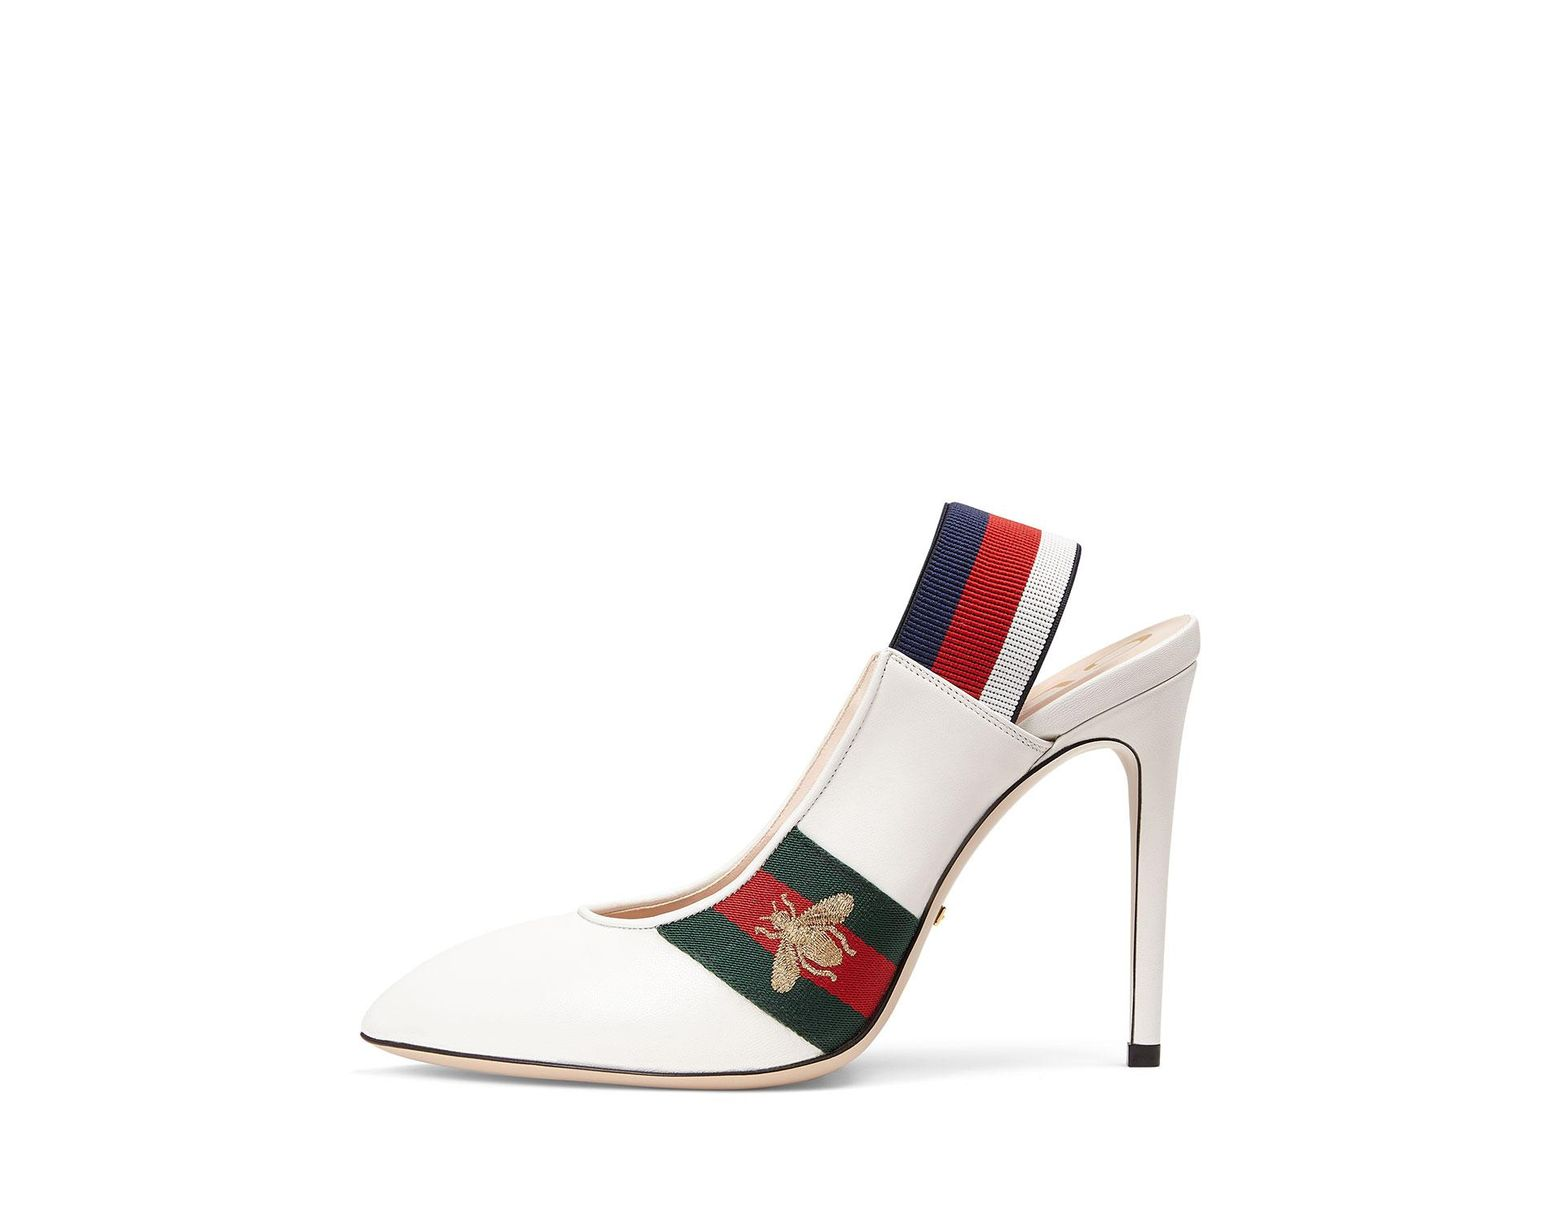 a9054d9e4 Gucci Leather Web Slingback Pump in White - Save 55% - Lyst